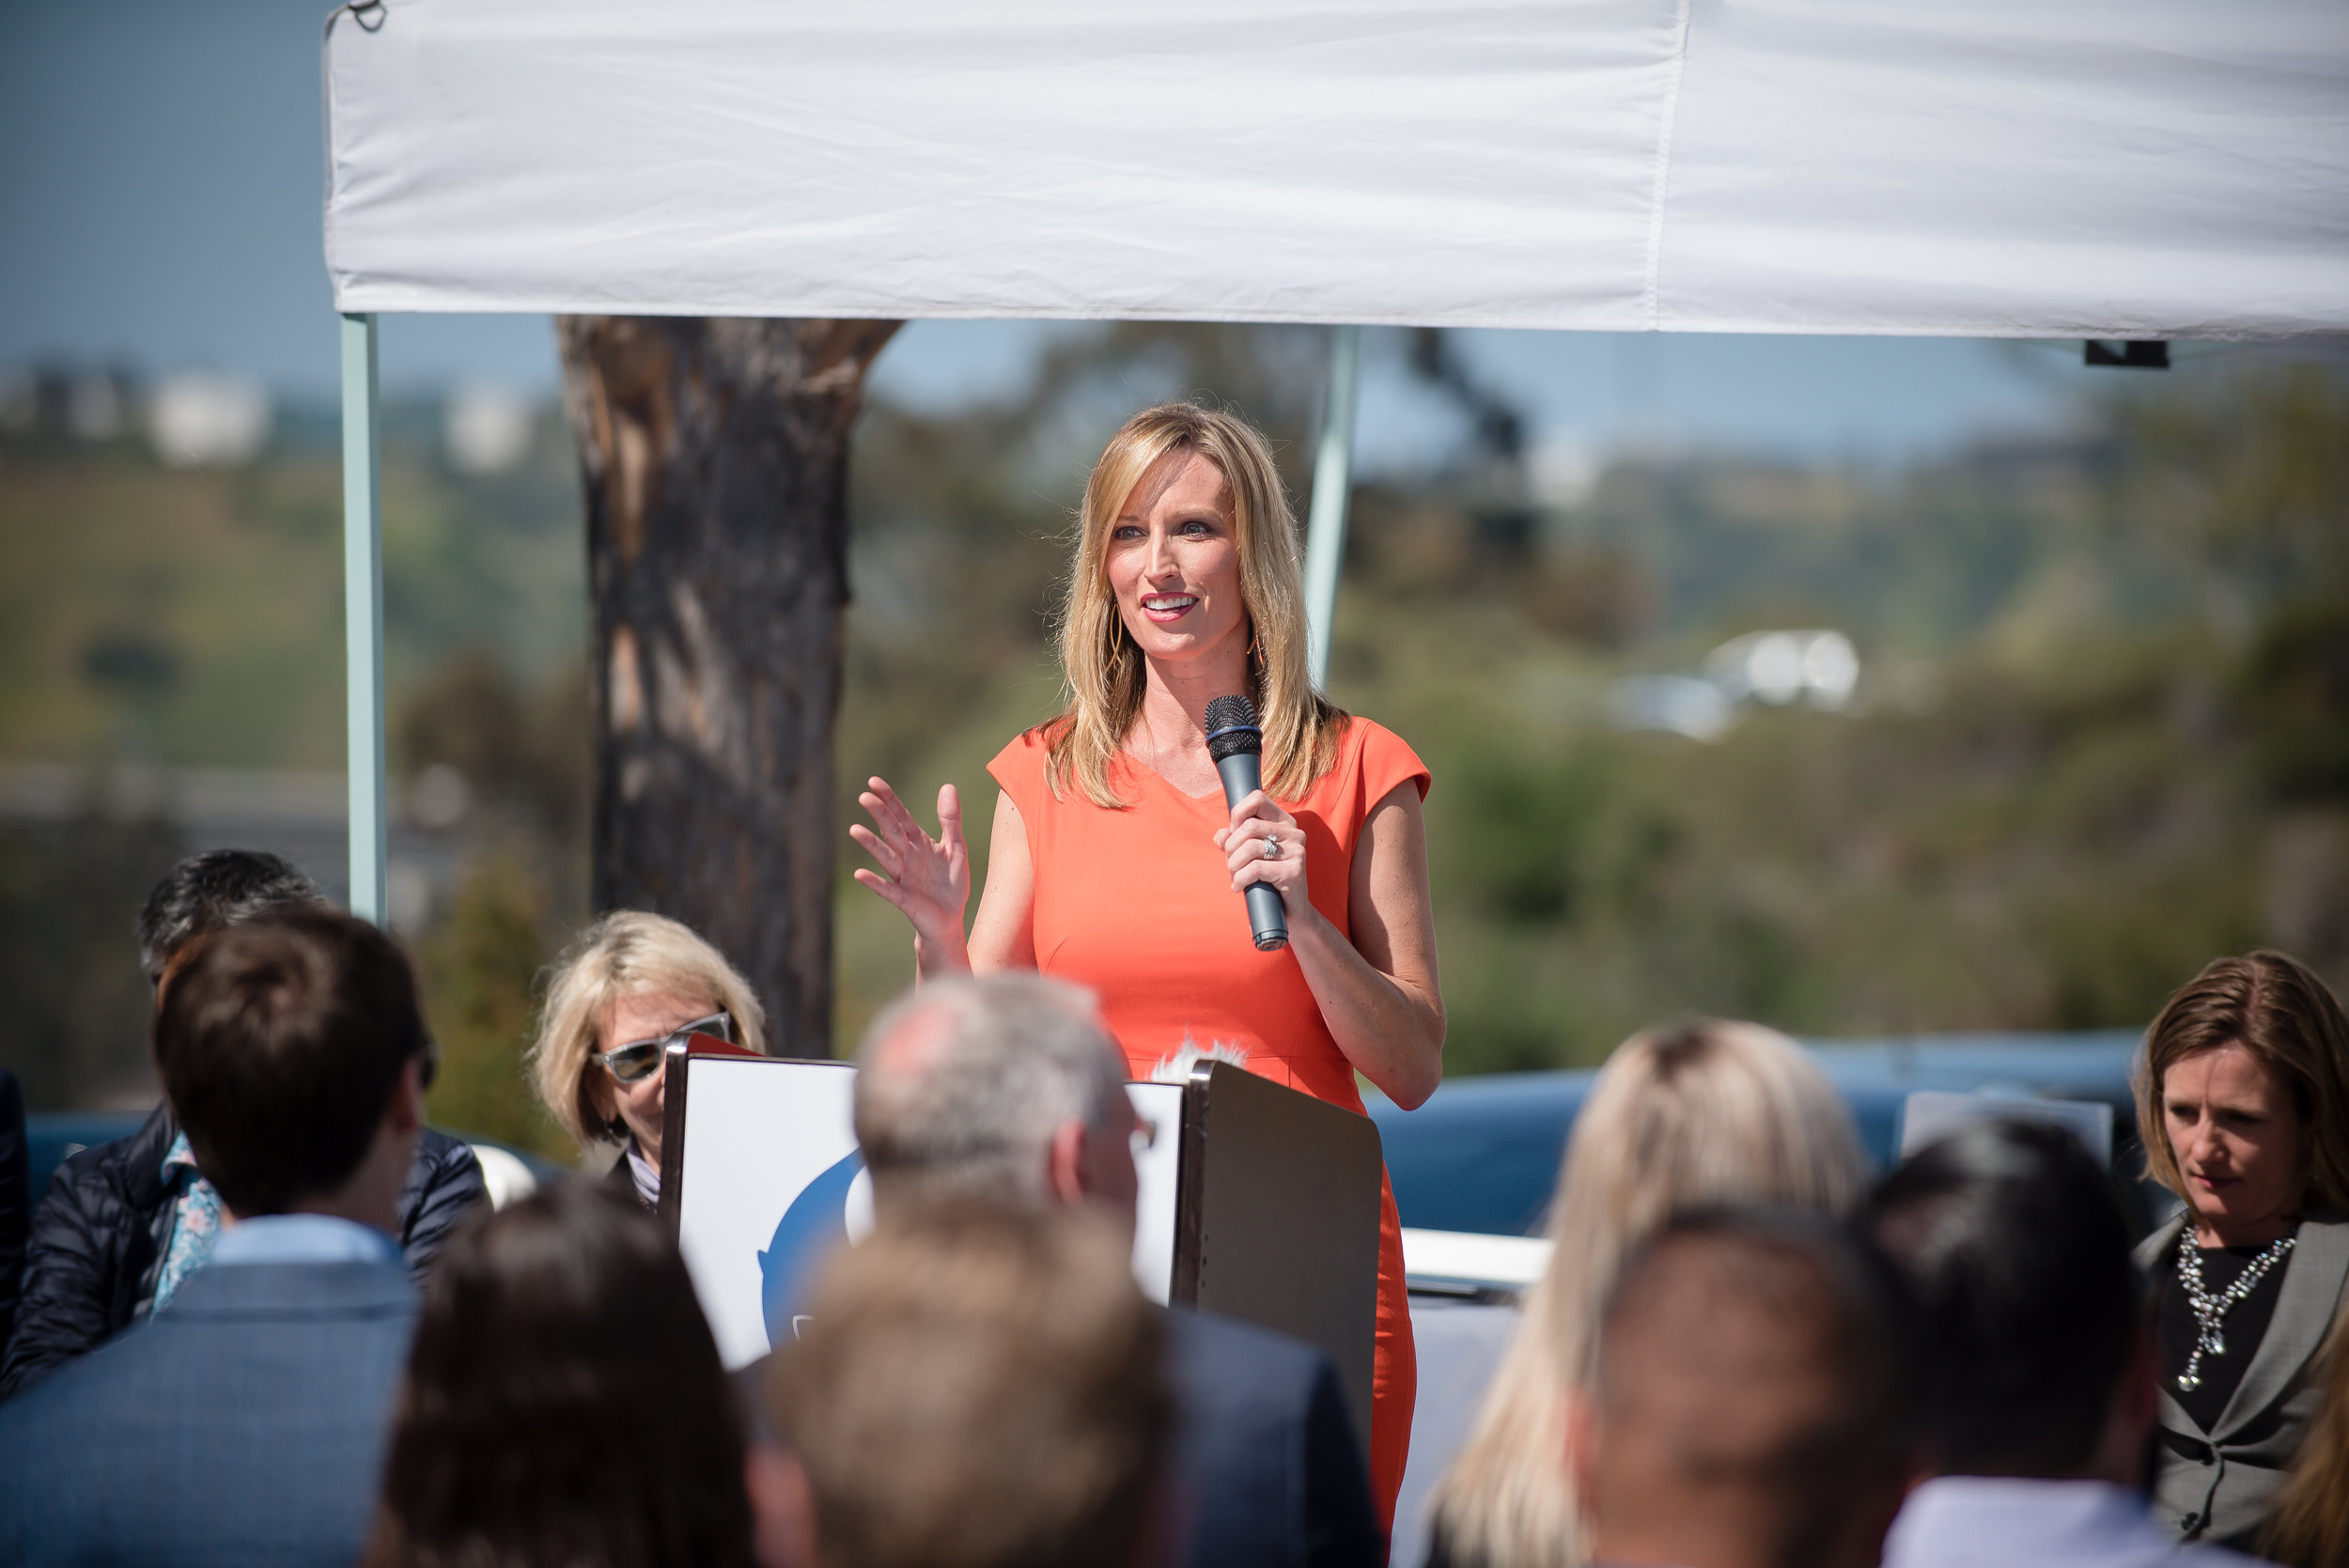 County Supervisor Kristin Gaspar at the BlueNalu Ribbon Cutting Ceremony, Earth Day, April 22, 2019.